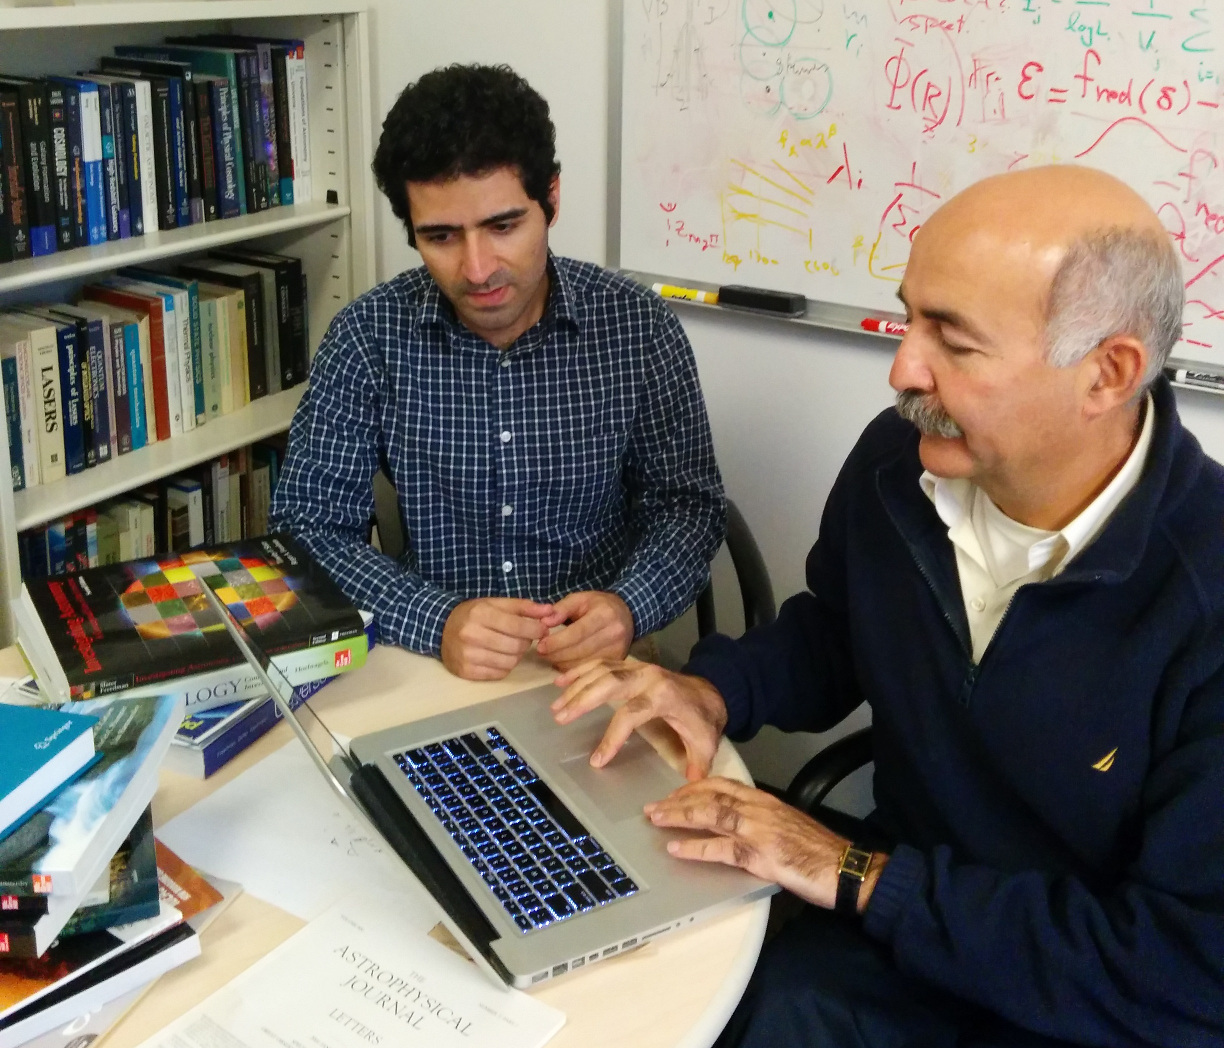 Behnam Darvish (left) and Bahram Mobasher are astronomers in the Department of Physics and Astronomy at the University of California, Riverside. Image credit: UC Riverside.